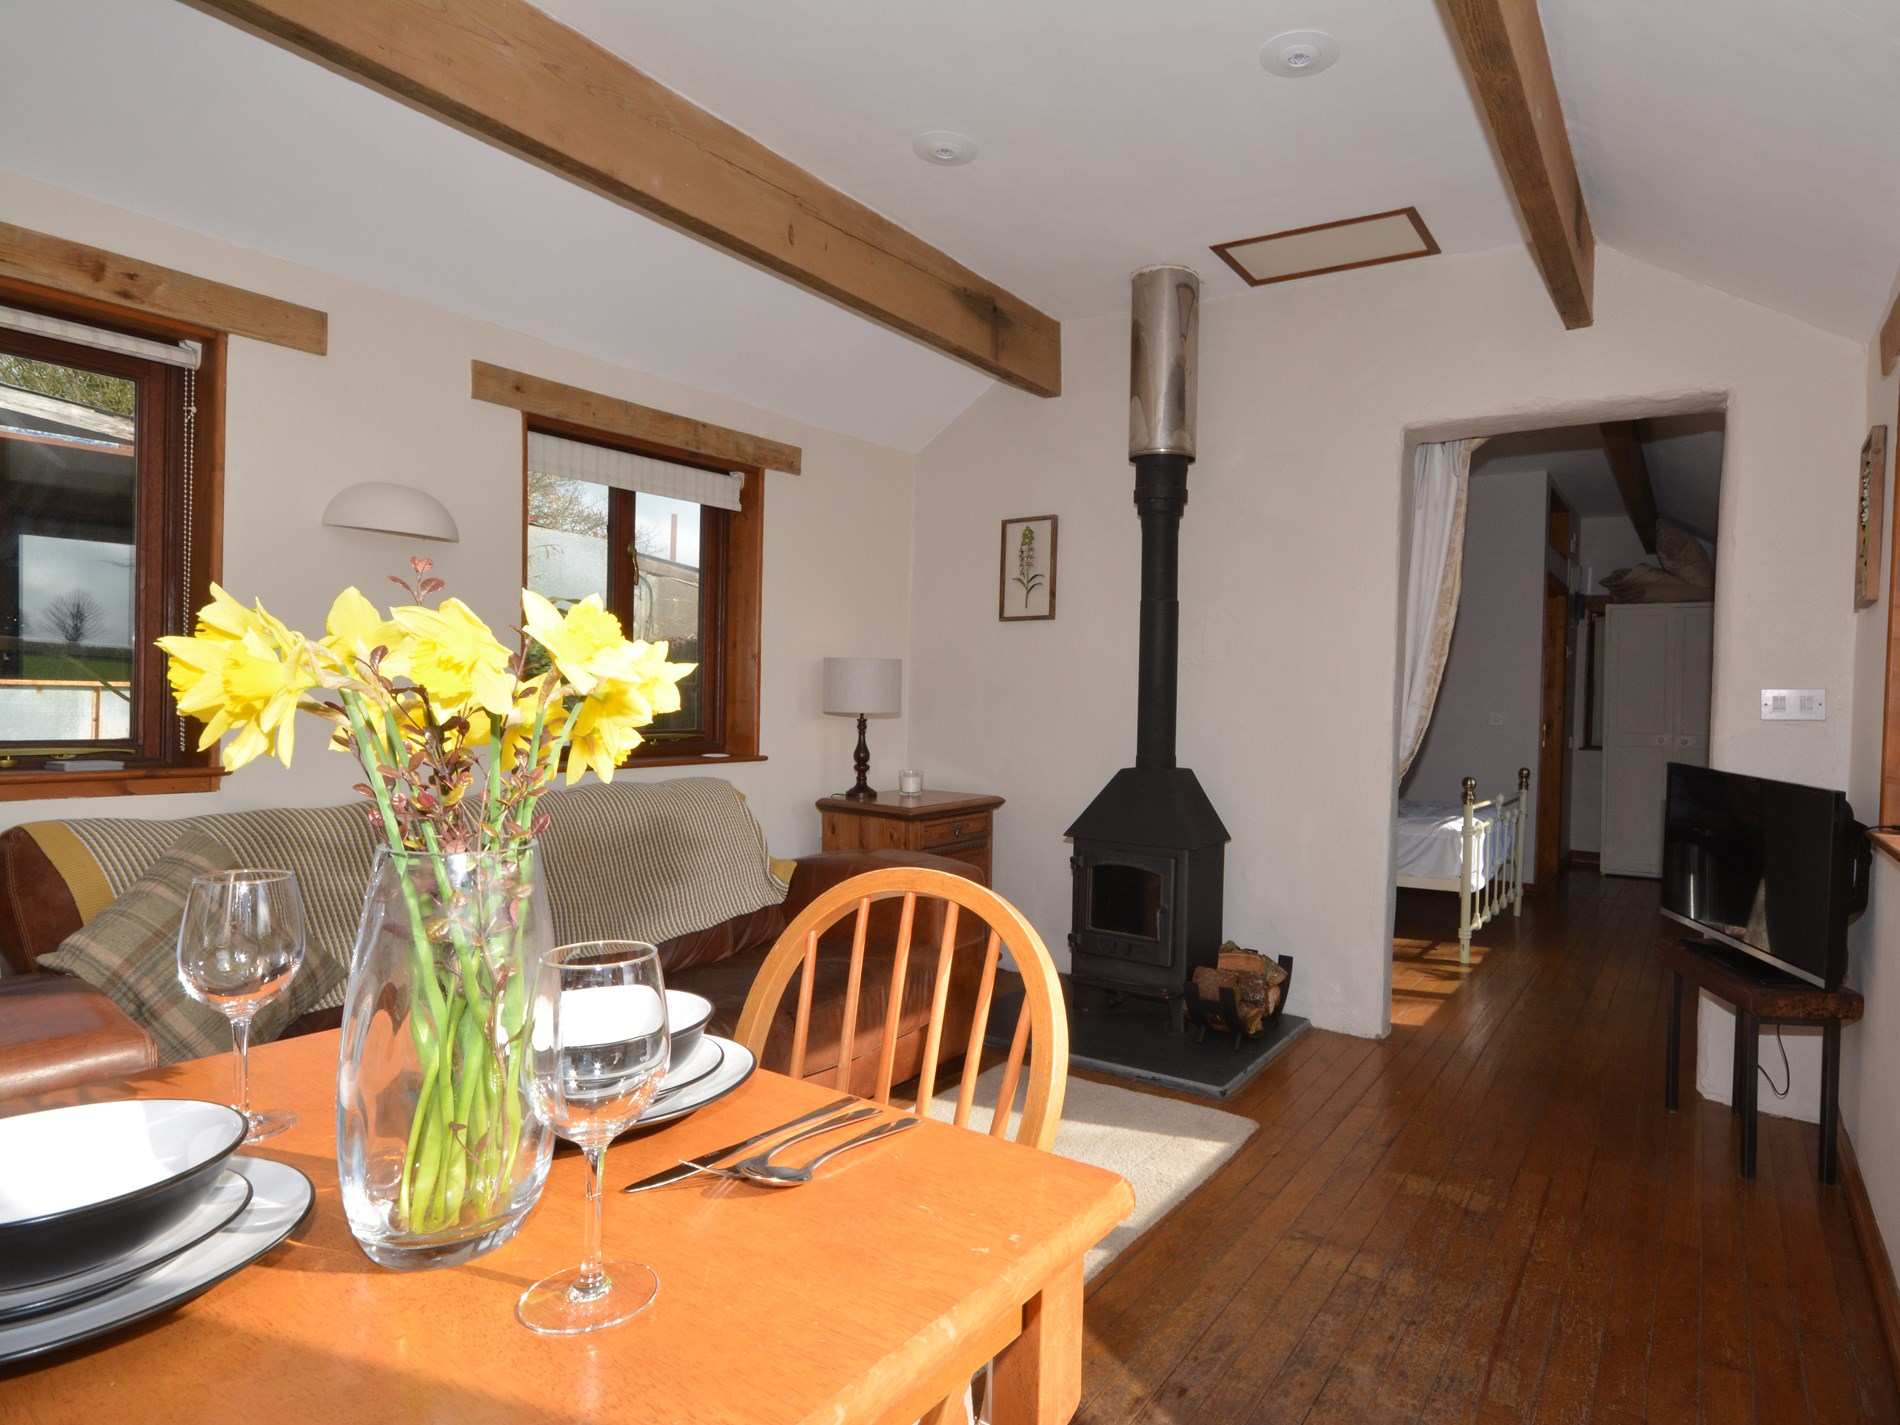 1 Bedroom Cottage in Ivybridge, Devon